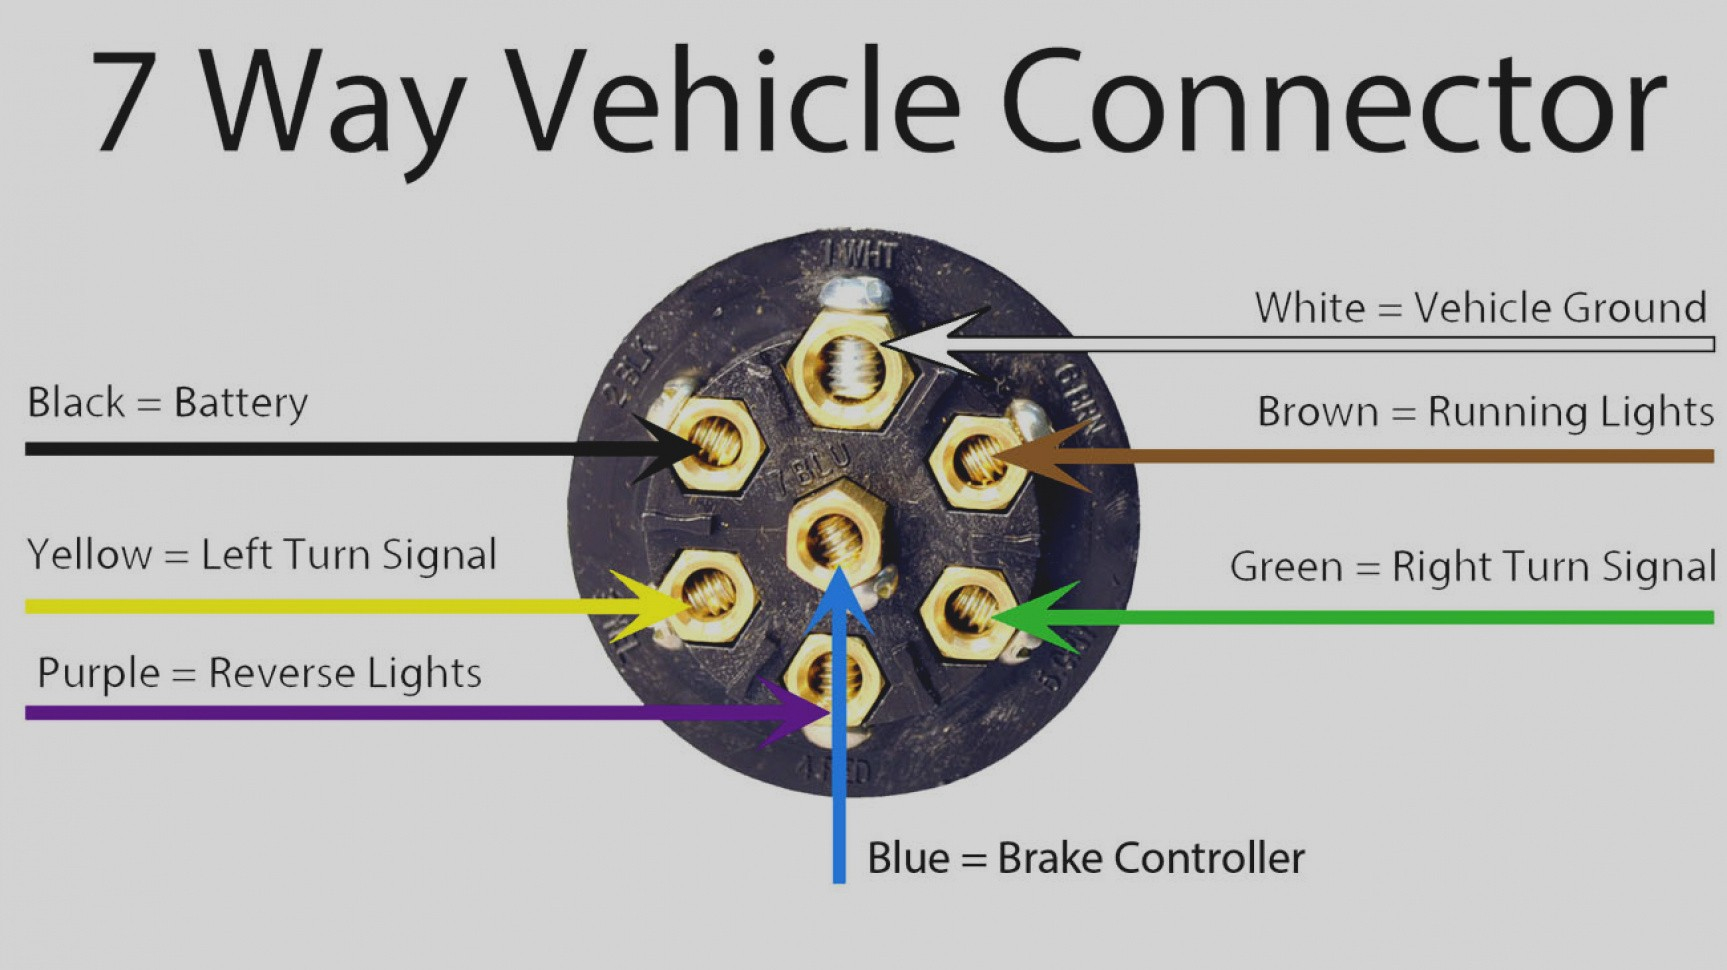 Electrical Connector Wiring Diagram | Wiring Library - Vehicle Trailer Wiring Diagram